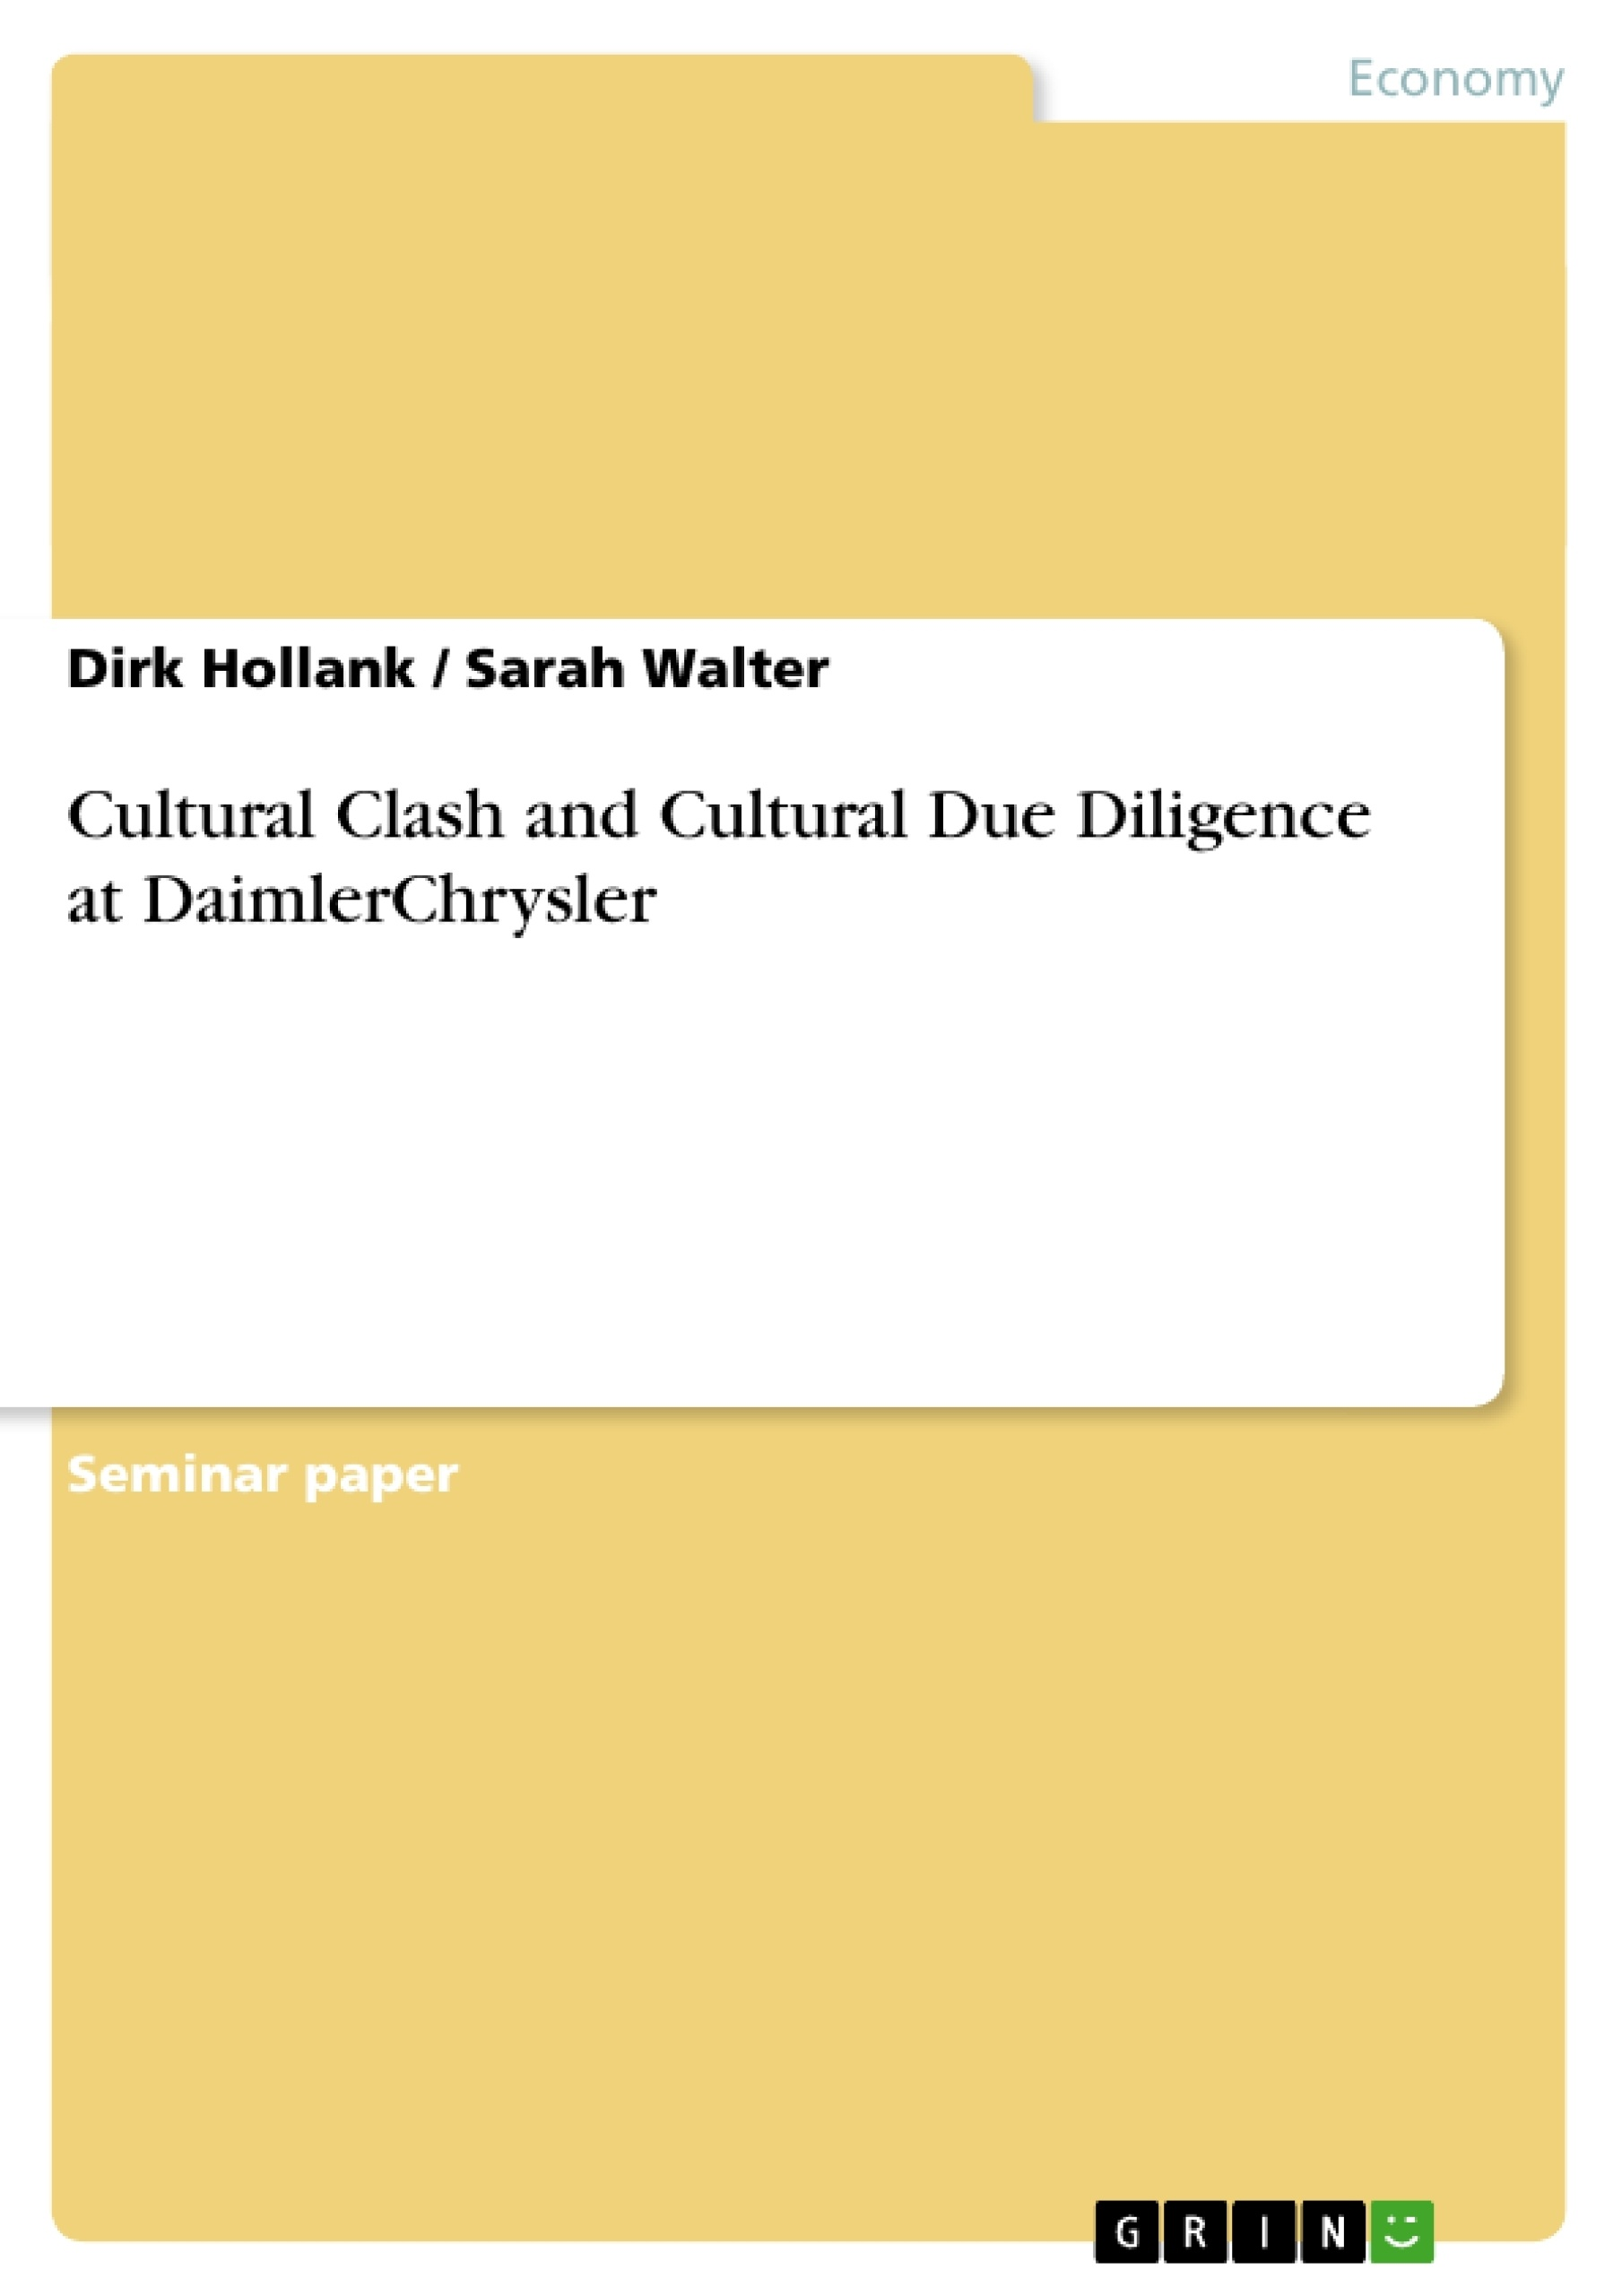 Title: Cultural Clash and Cultural Due Diligence at DaimlerChrysler